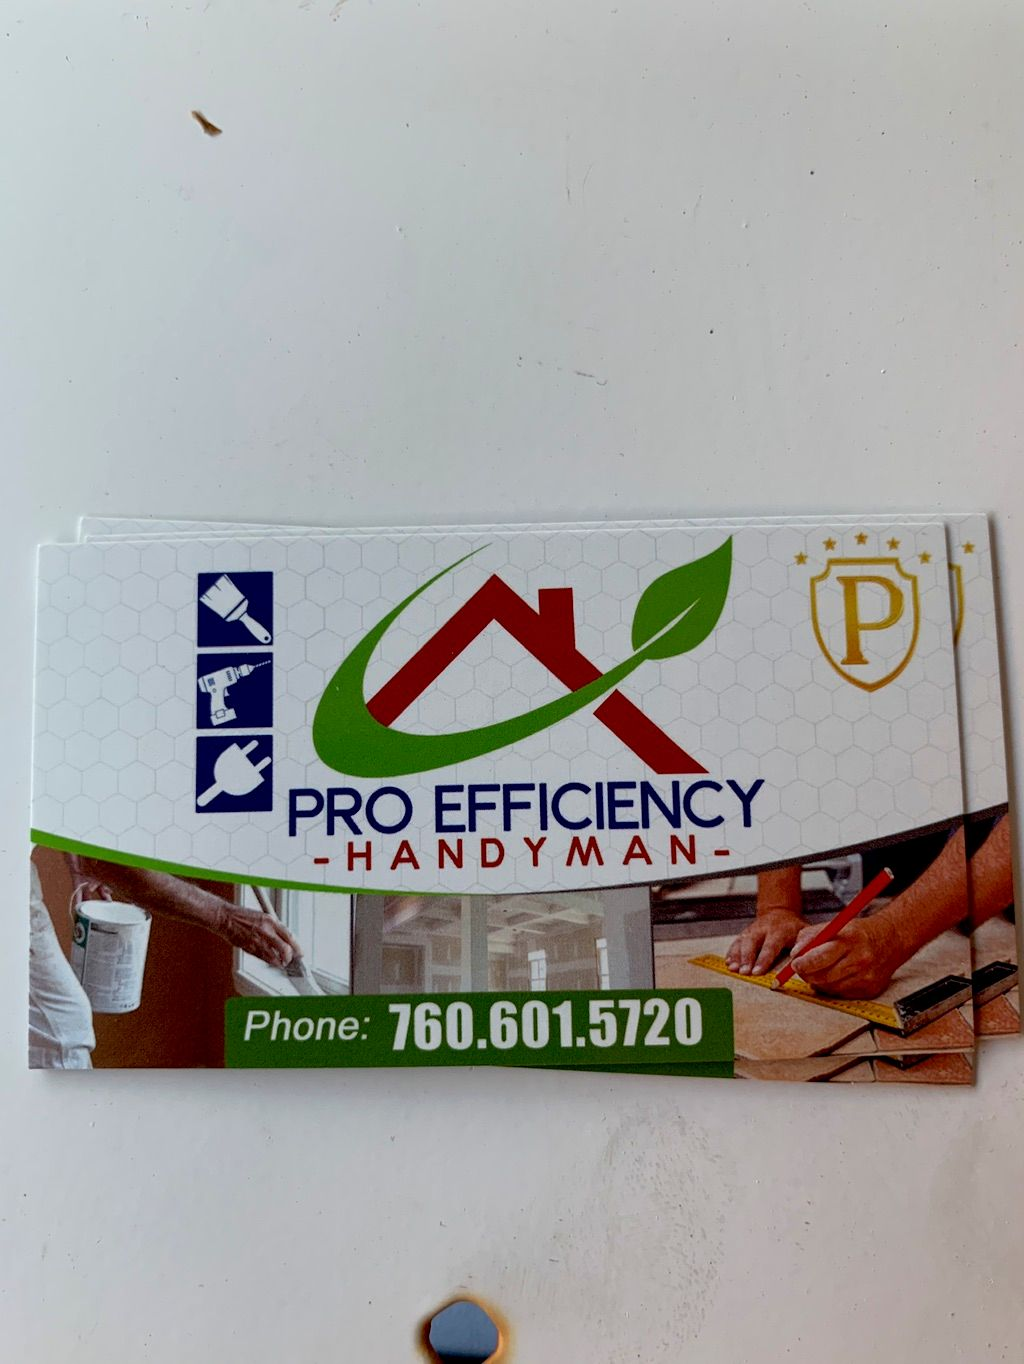 Pro Efficiency services